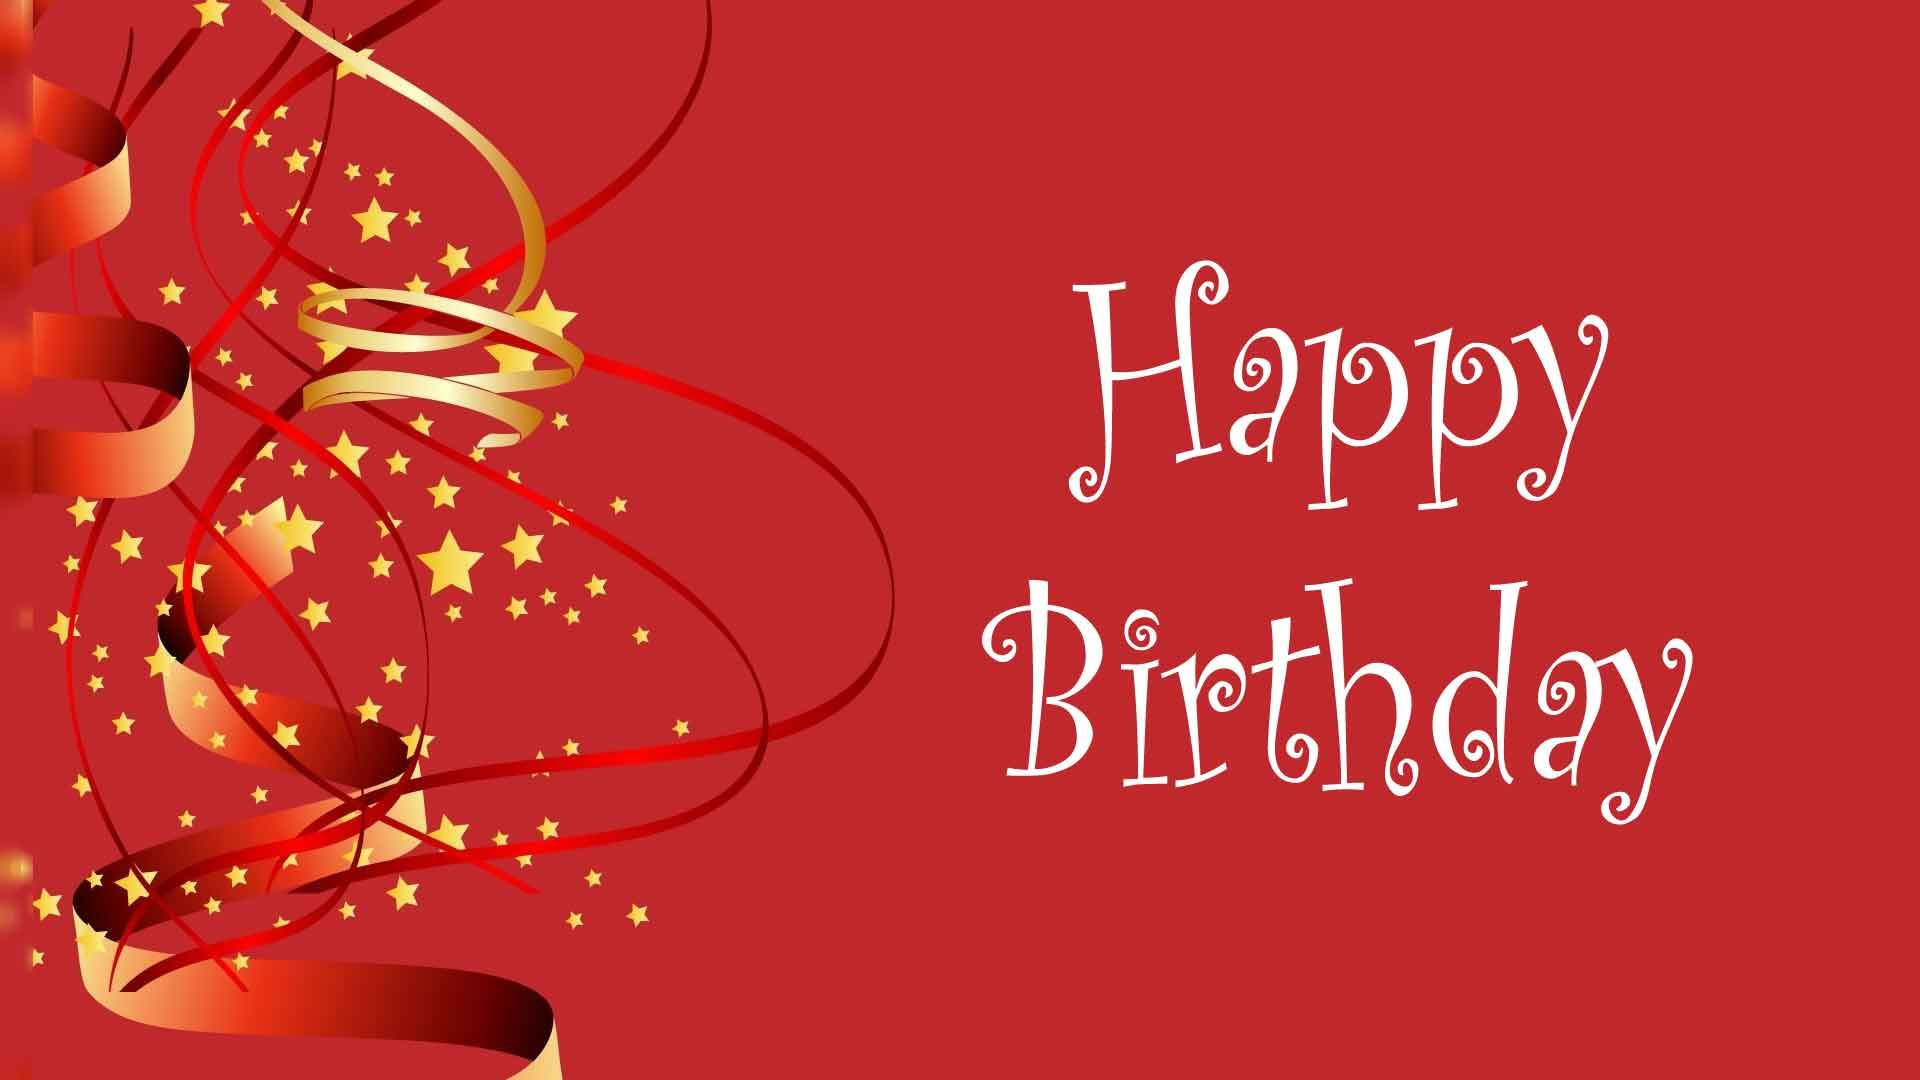 Bday background images - Birthday Background Vectors Photos And Psd Files Free Download